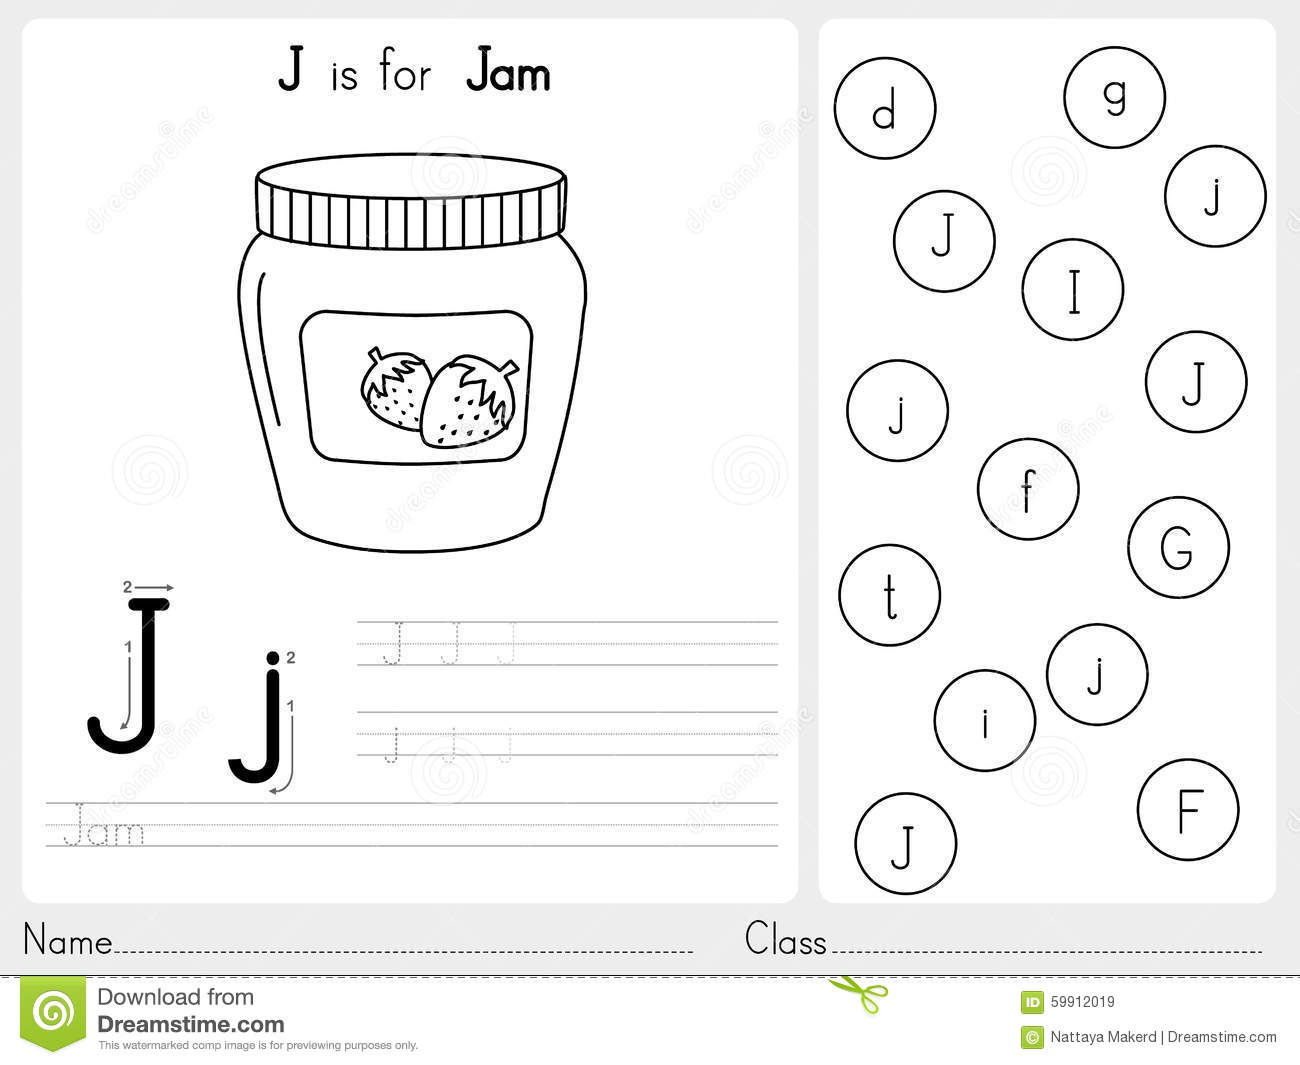 Paint Worksheet Transitional Kindergarten